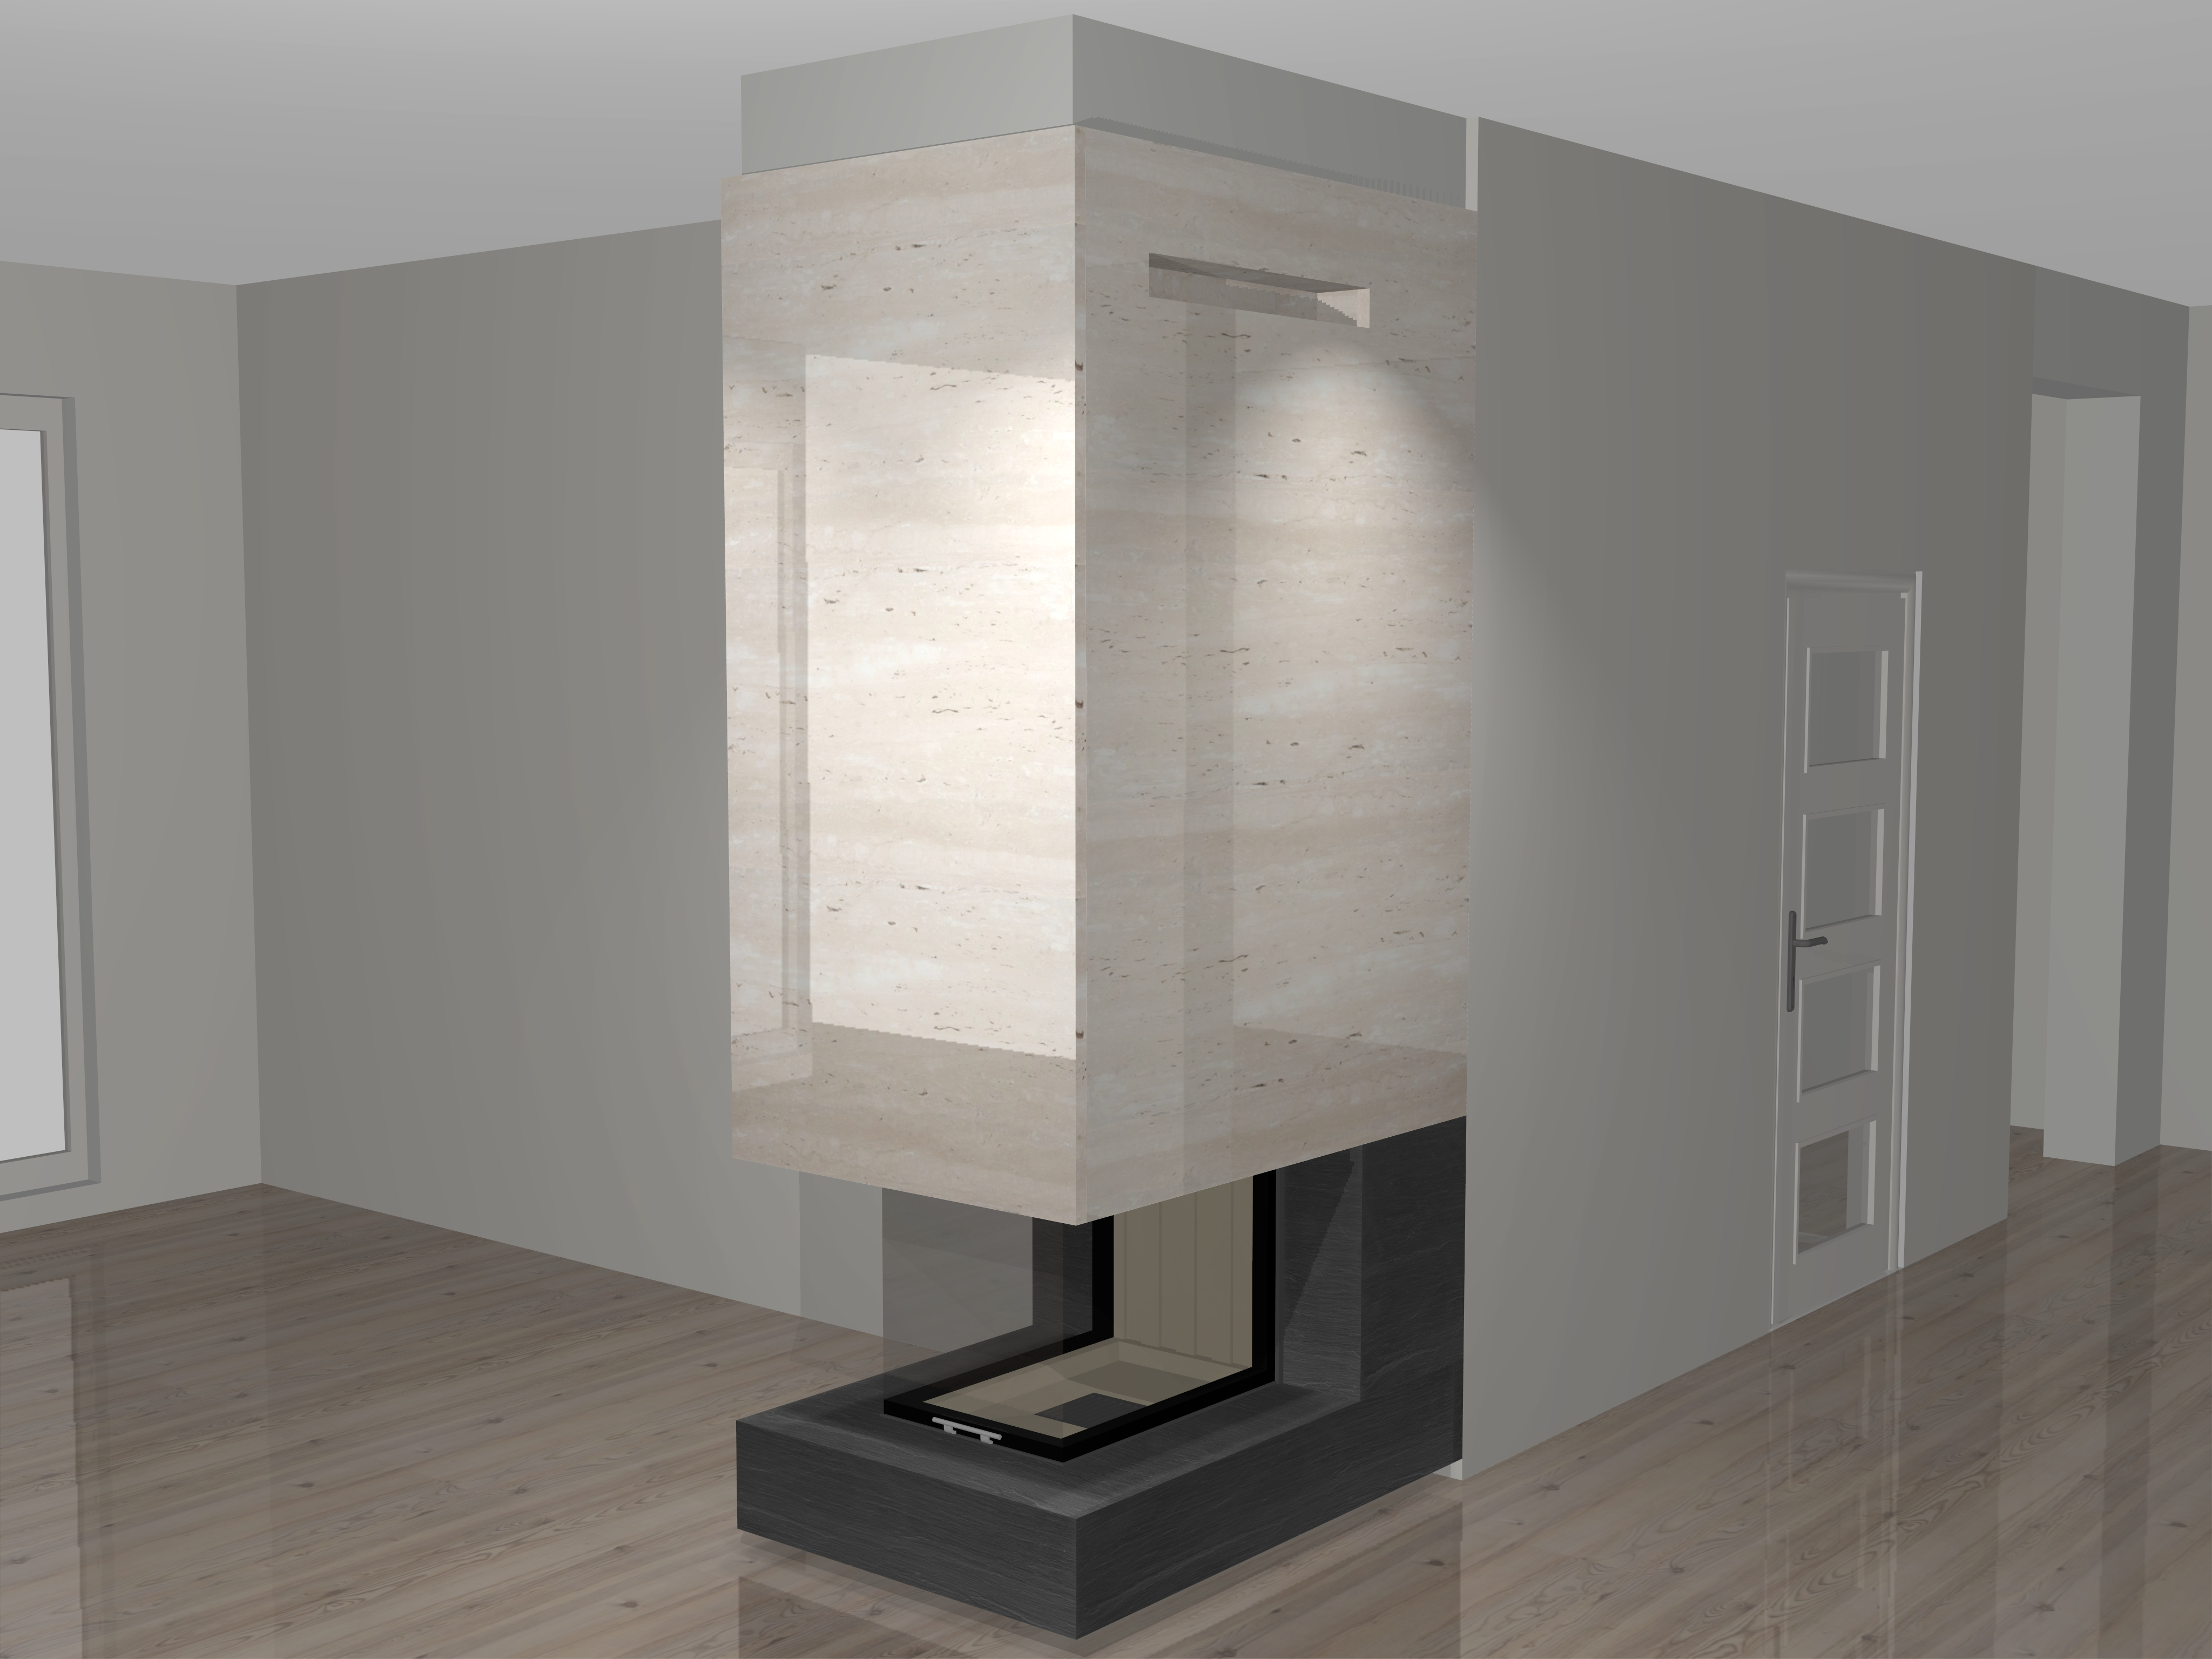 dreiseitiger kamin a 33 1 mit spartherm mit montage www. Black Bedroom Furniture Sets. Home Design Ideas